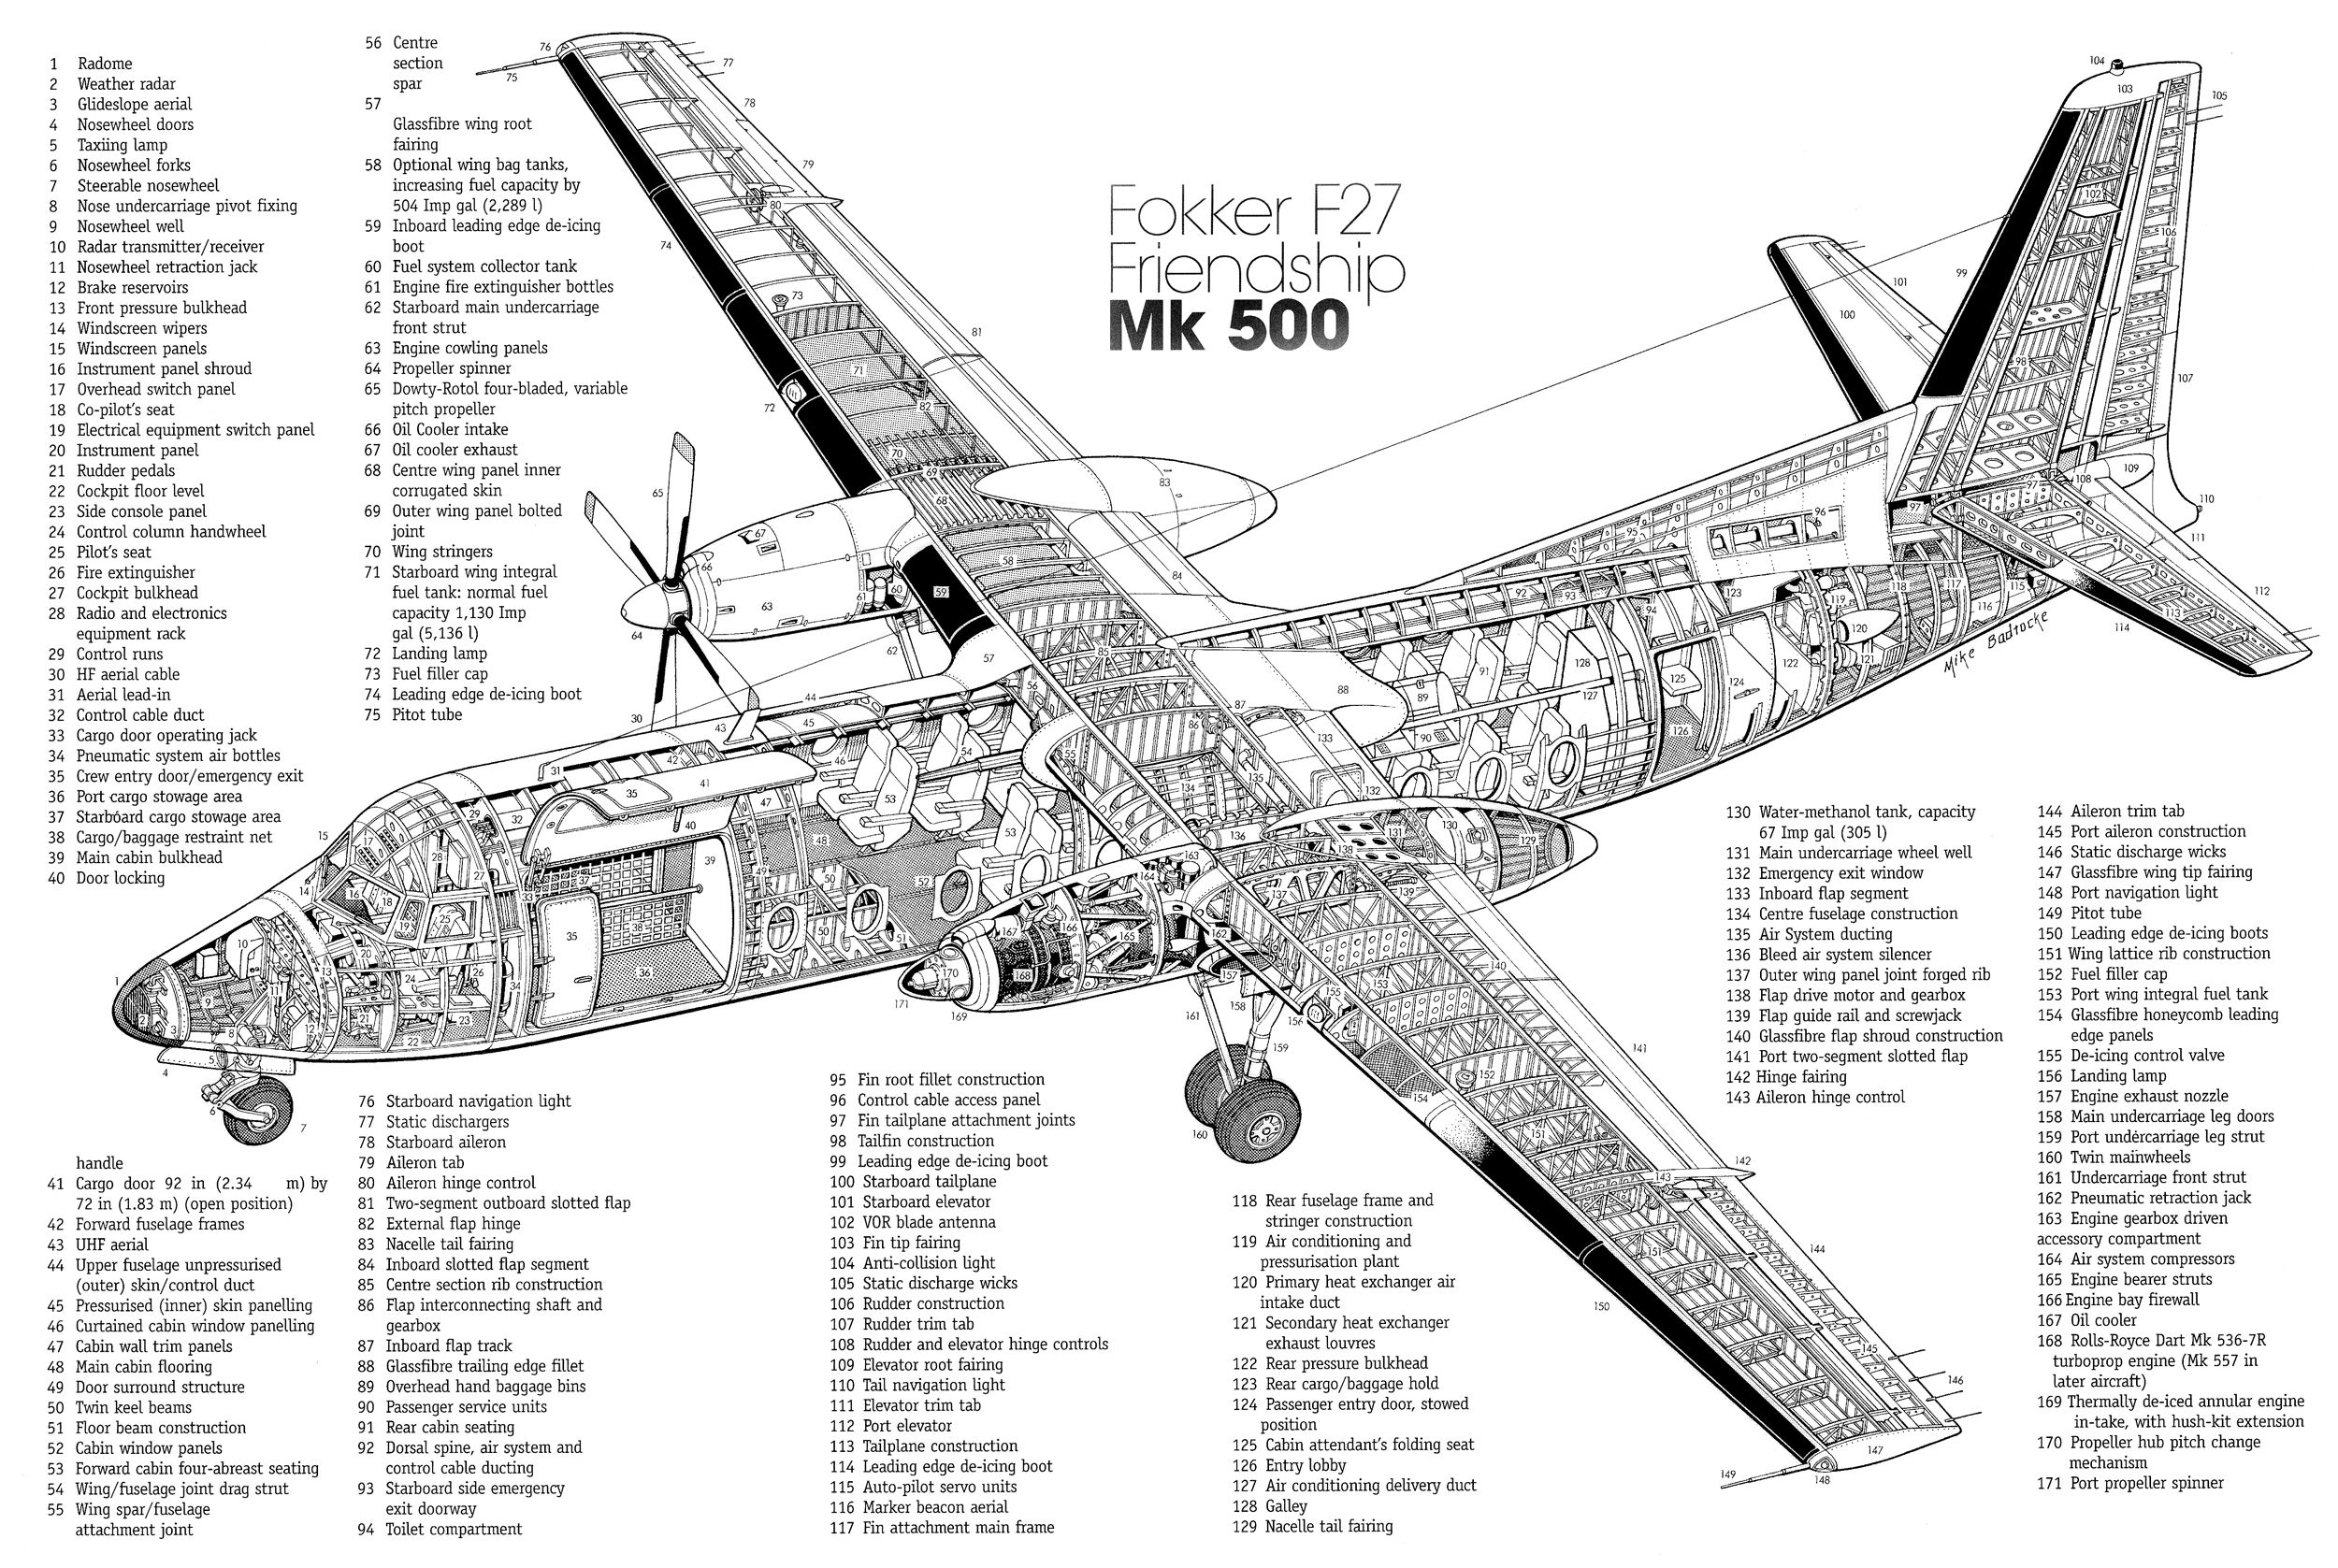 Tai Dc8 Cutaway Airliners3 T Cutaway Aviation Art And